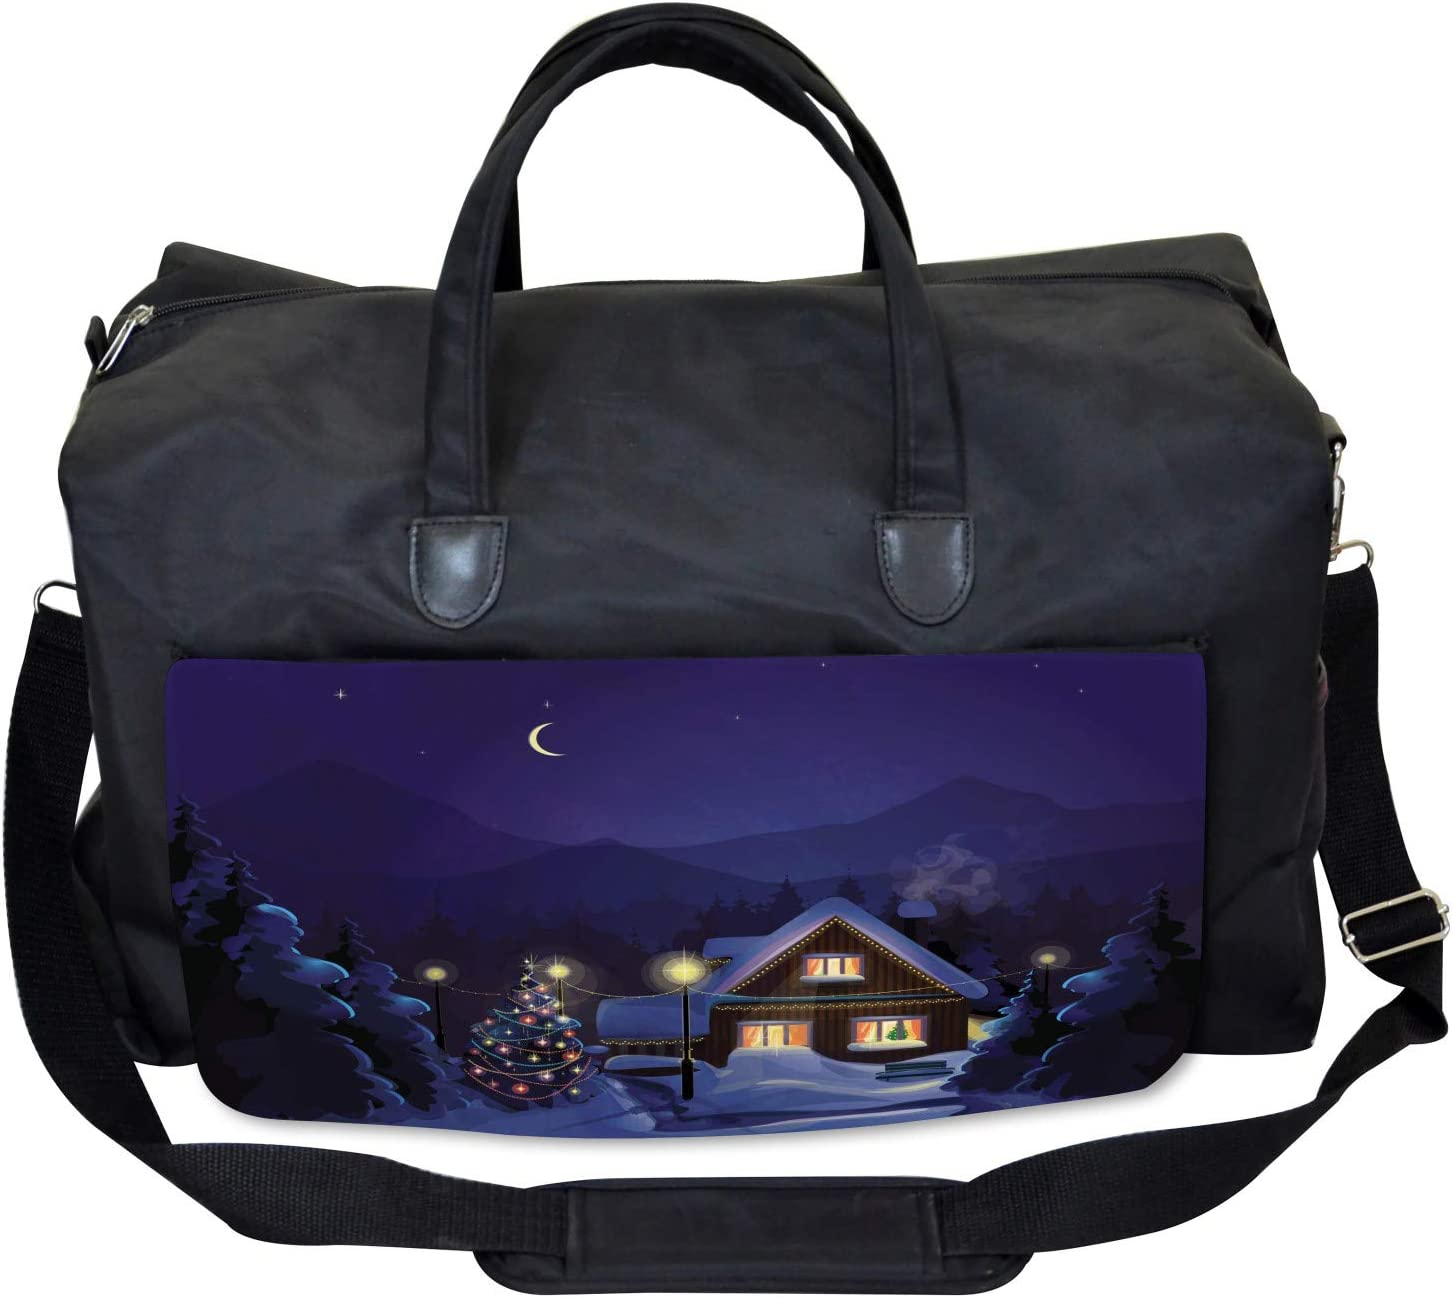 Winter Home and Tree Large Weekender Carry-on Ambesonne Christmas Gym Bag